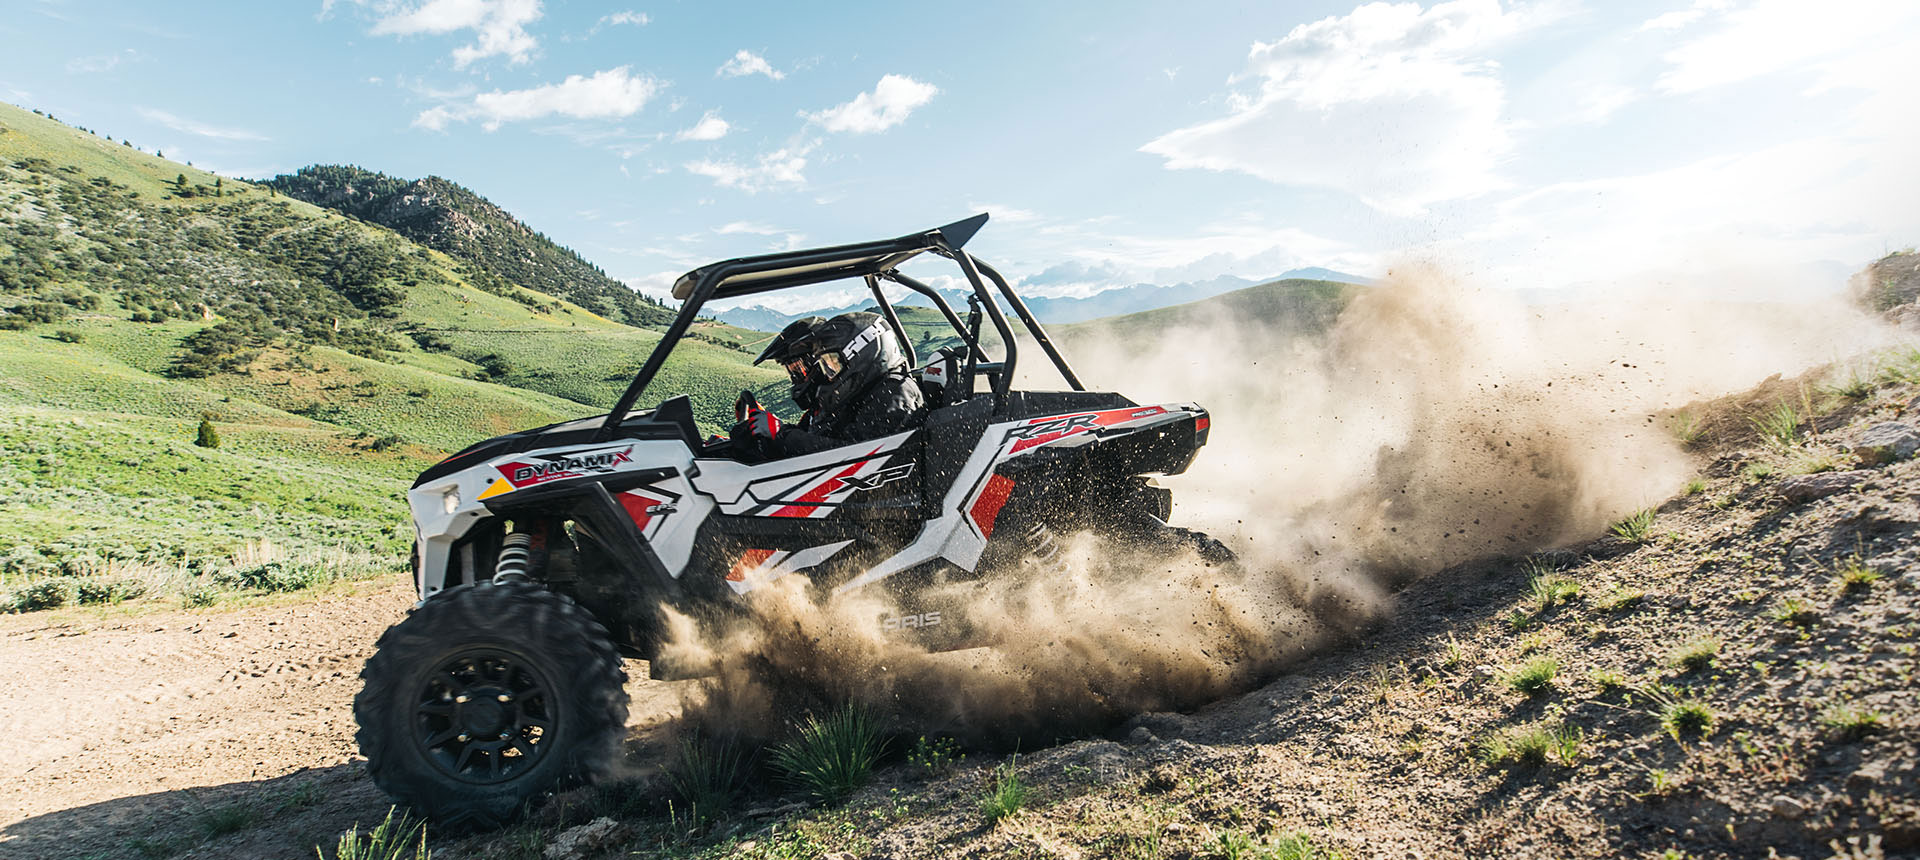 2019 Polaris RZR XP 1000 in Rapid City, South Dakota - Photo 6